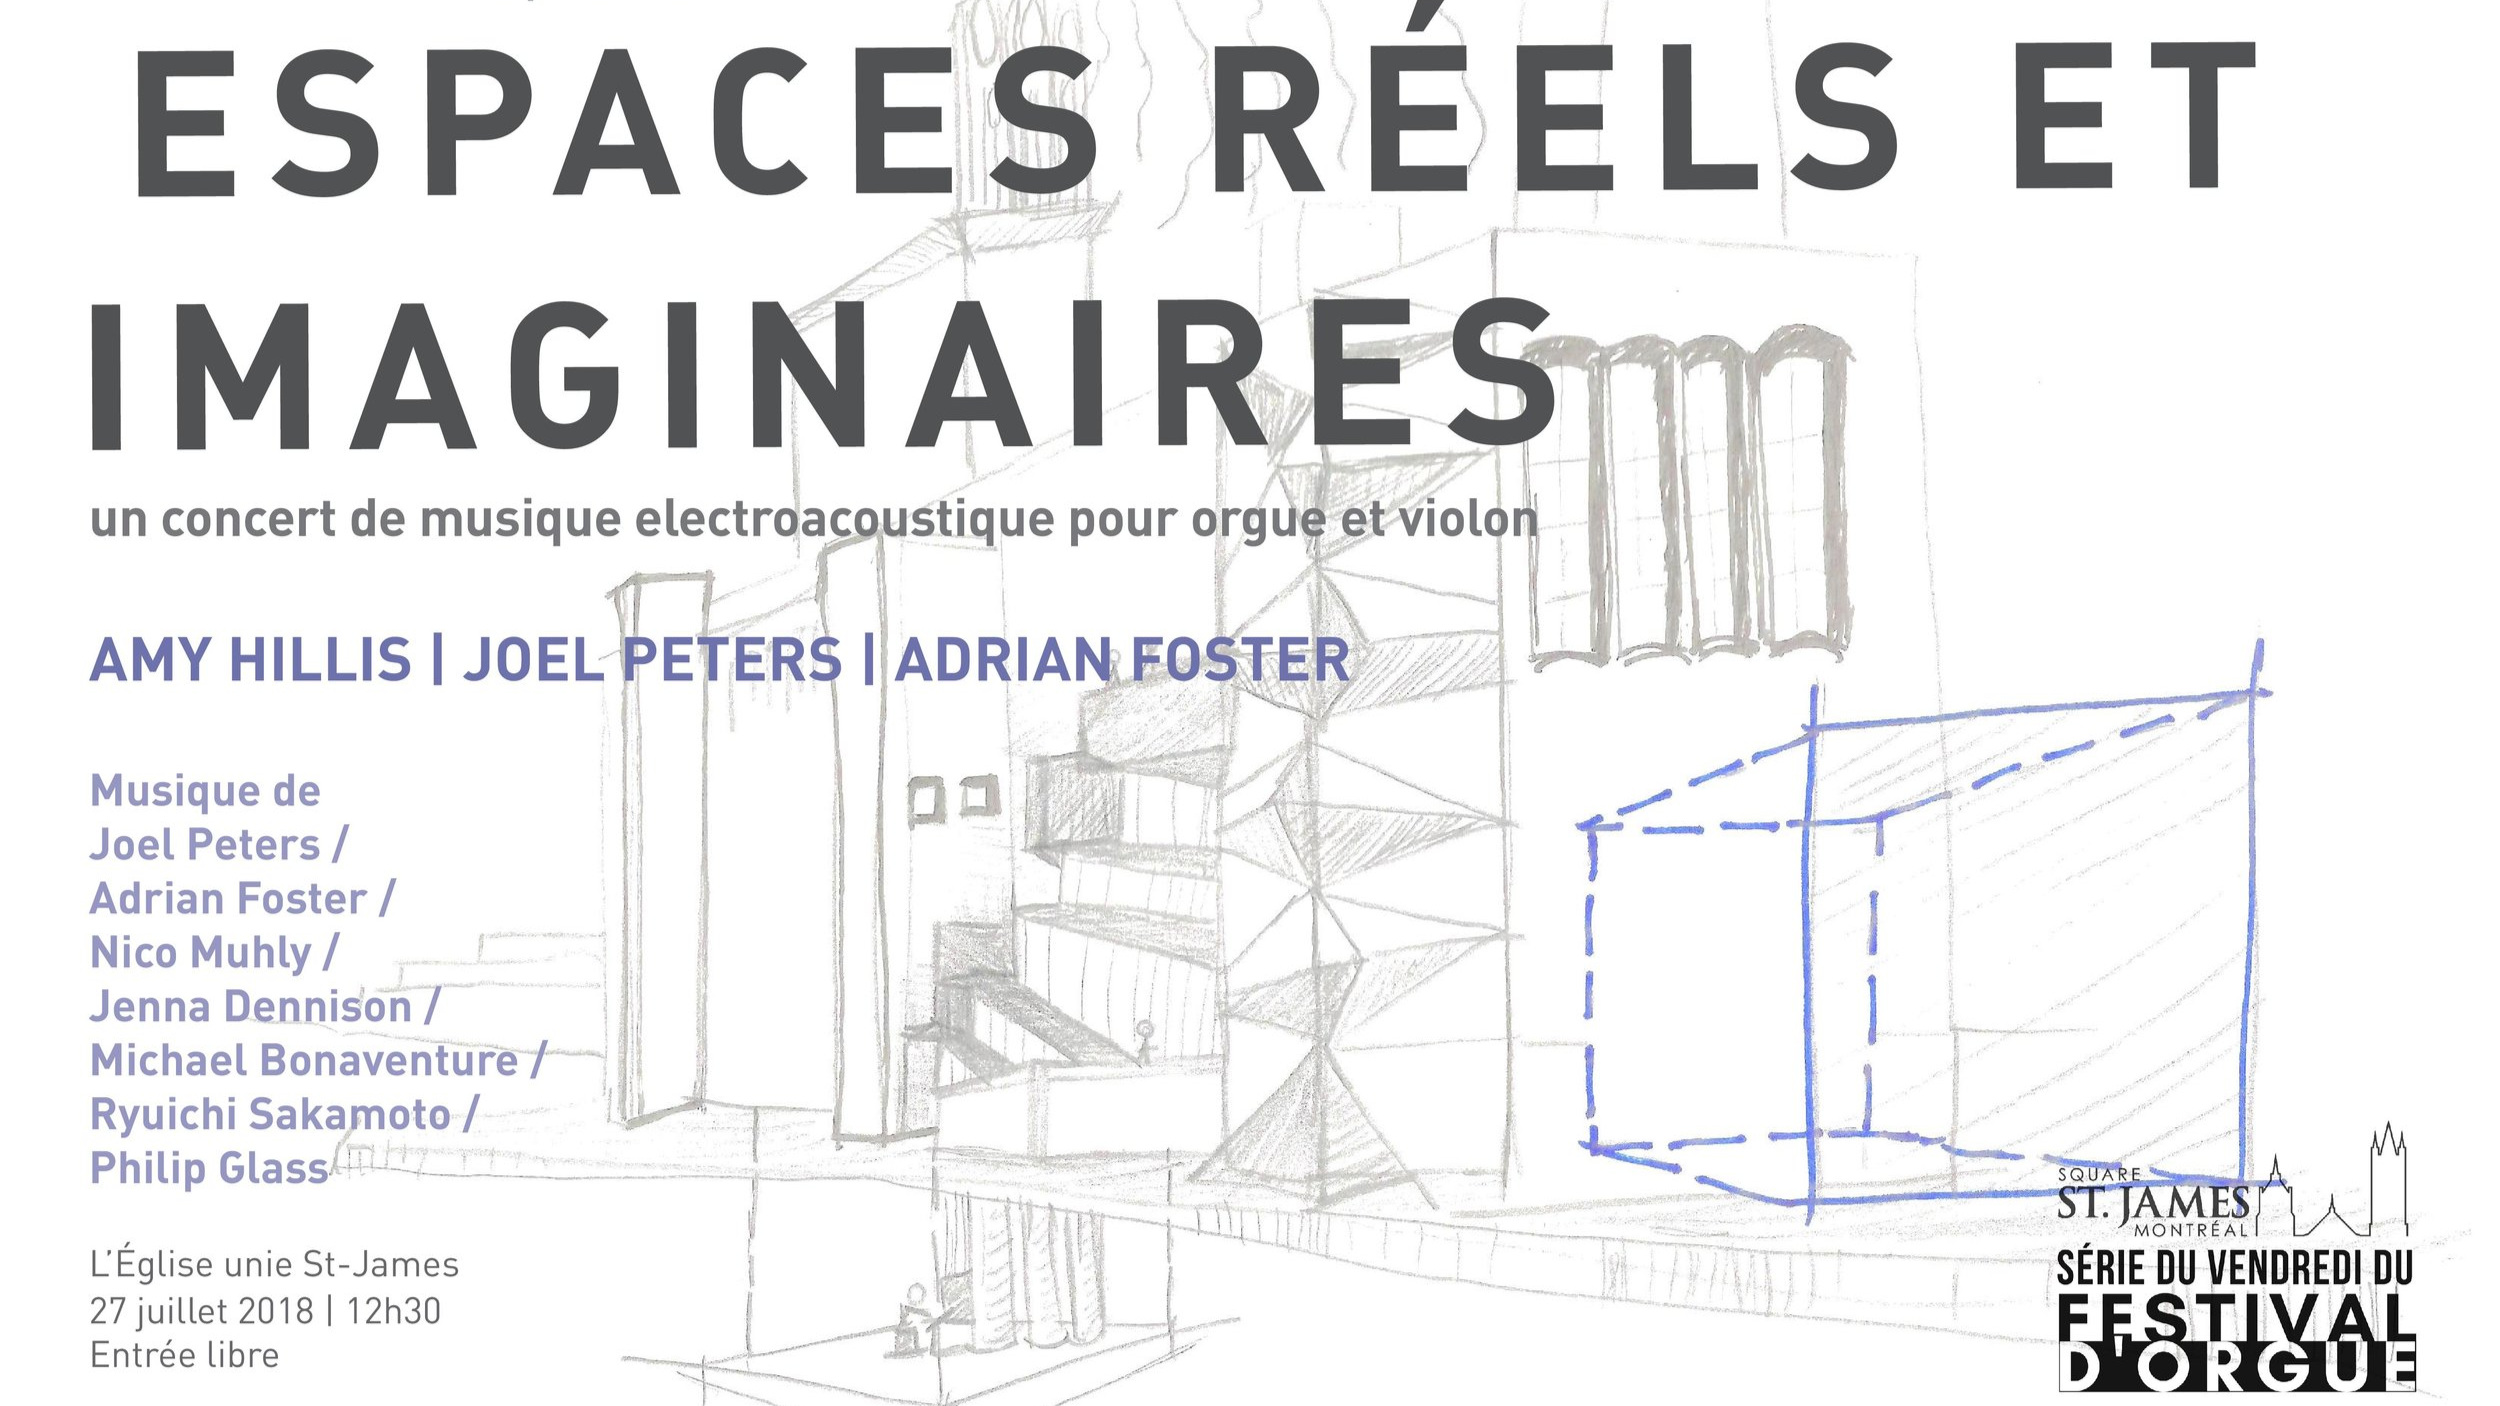 Real and Imagined Spaces (July 2018) - St. James United Church (Montréal) - w/Amy Hillis, violin